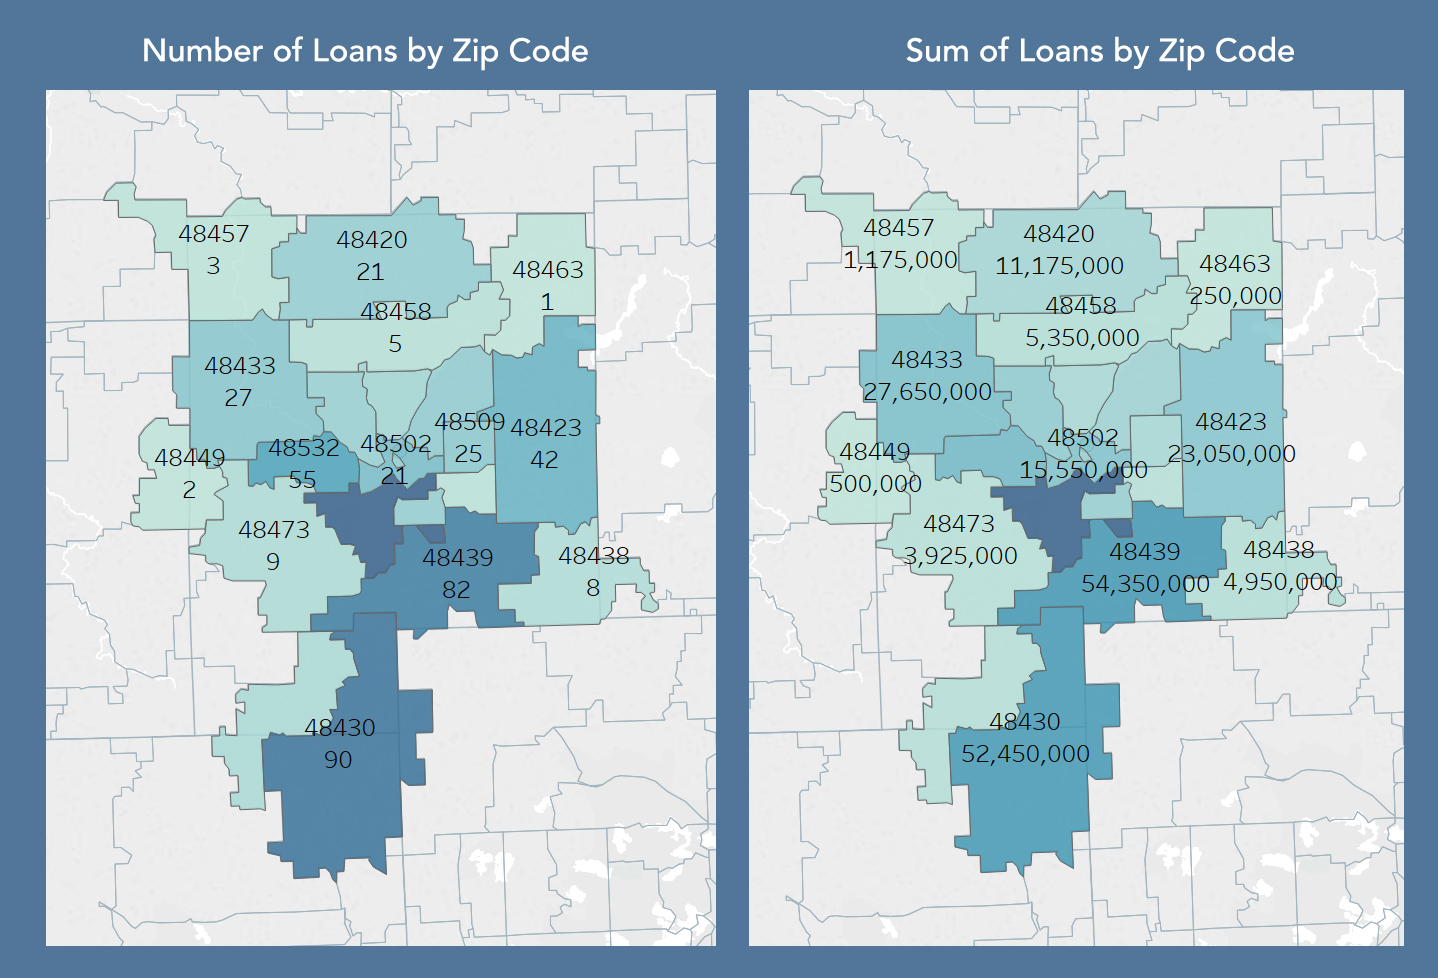 Graph showing loans by zip code